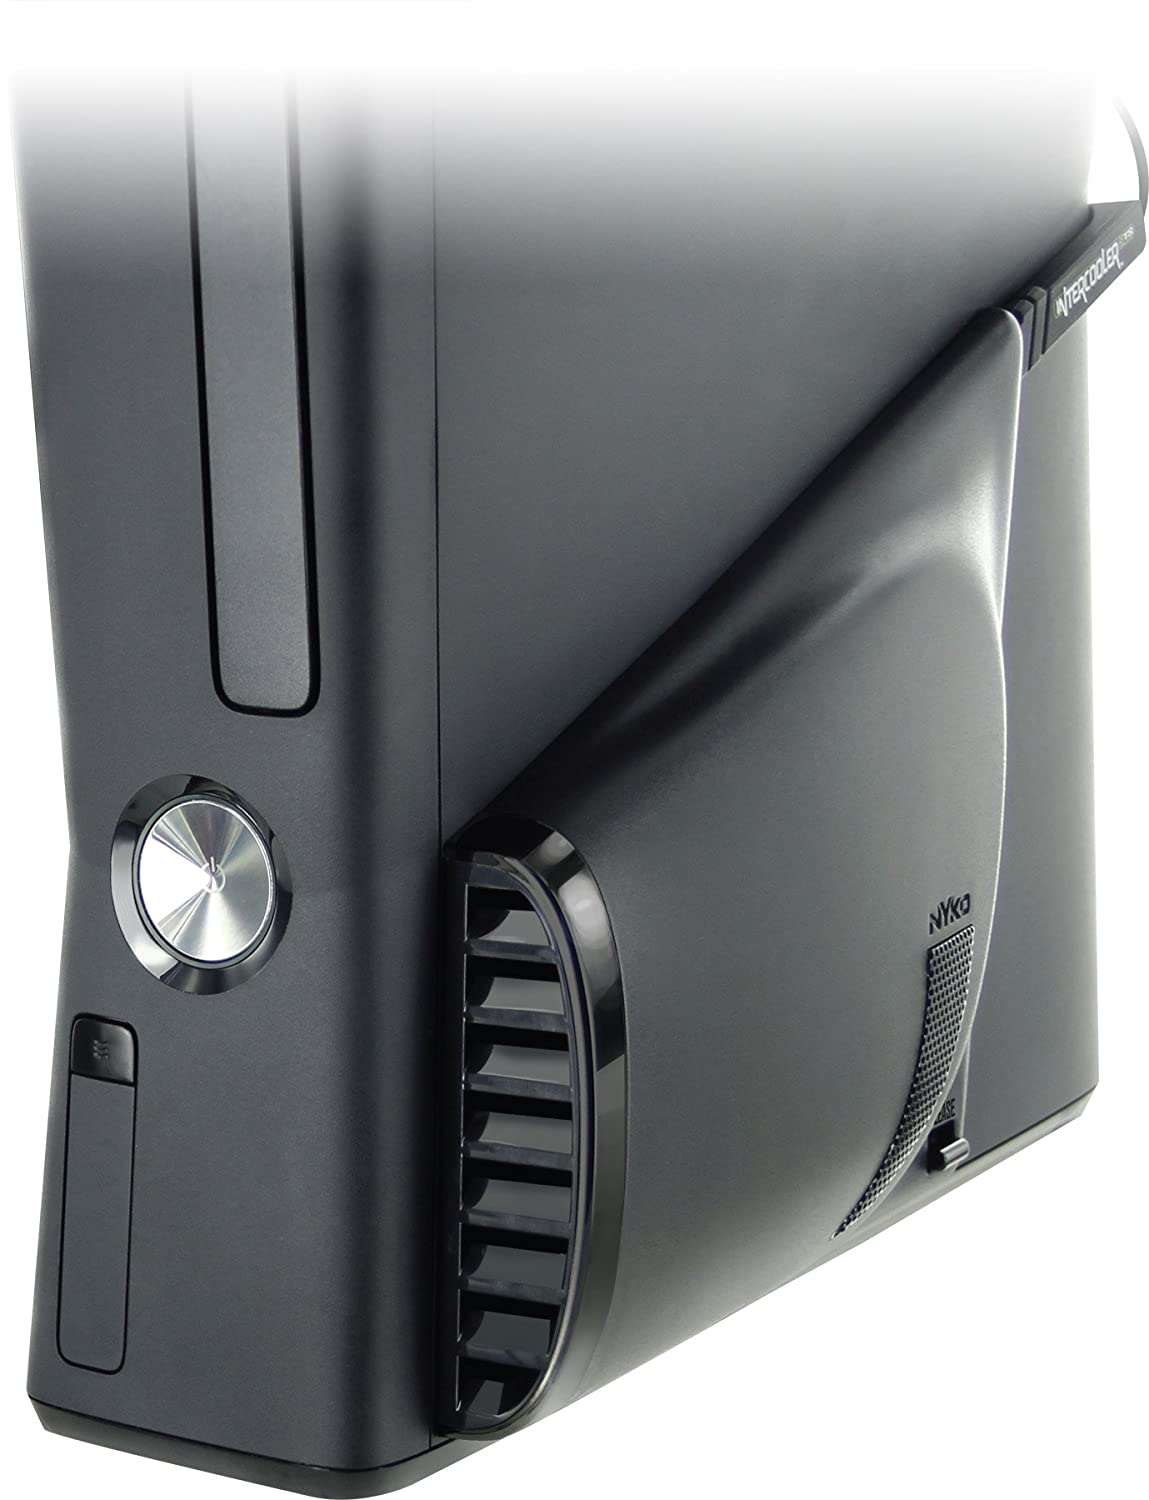 Nyko Intercooler STS for Xbox 360 Slim